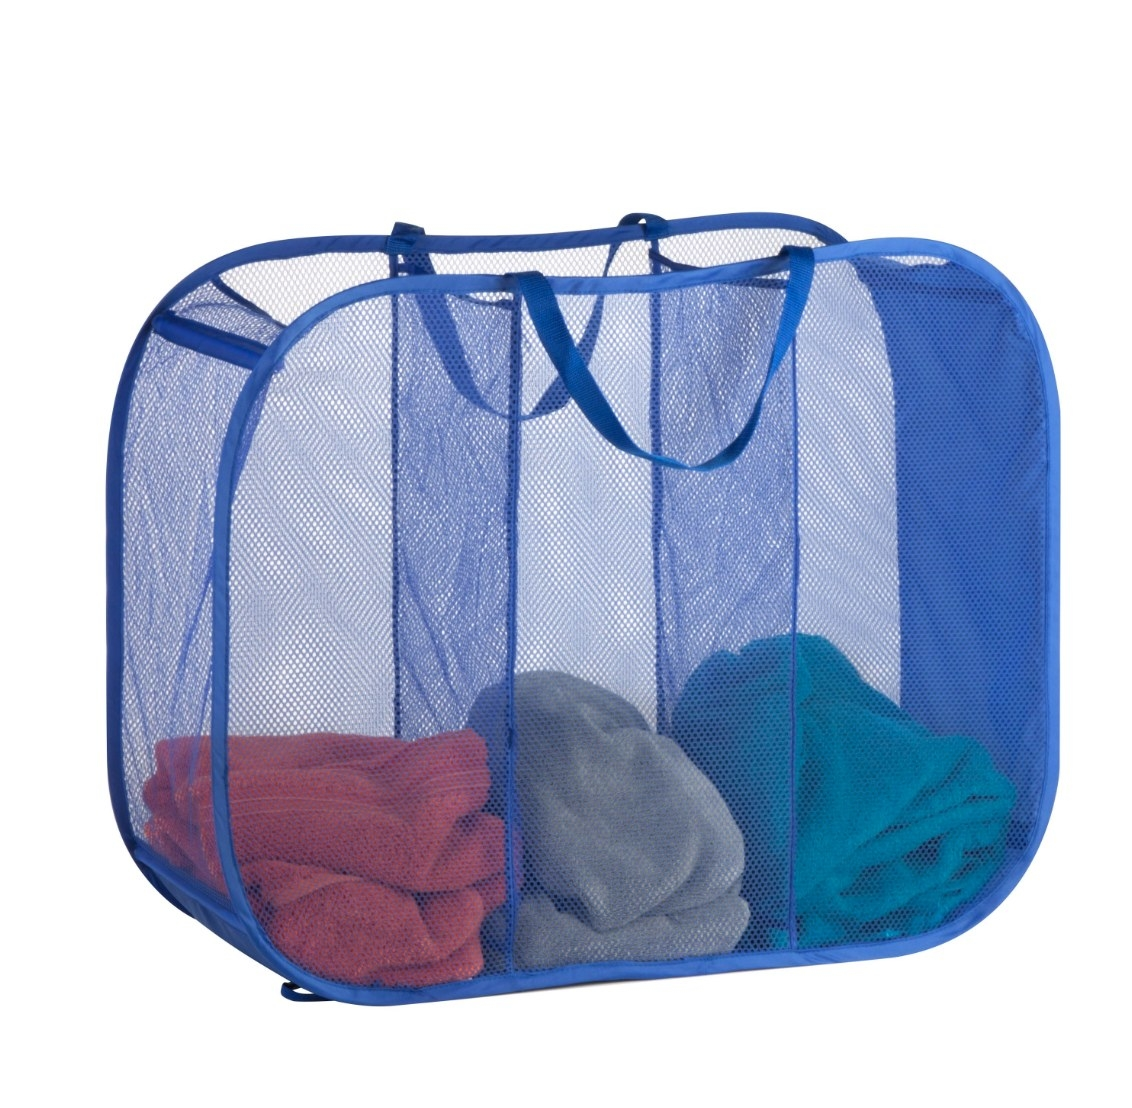 The triple sorter mesh laundry basket in blue